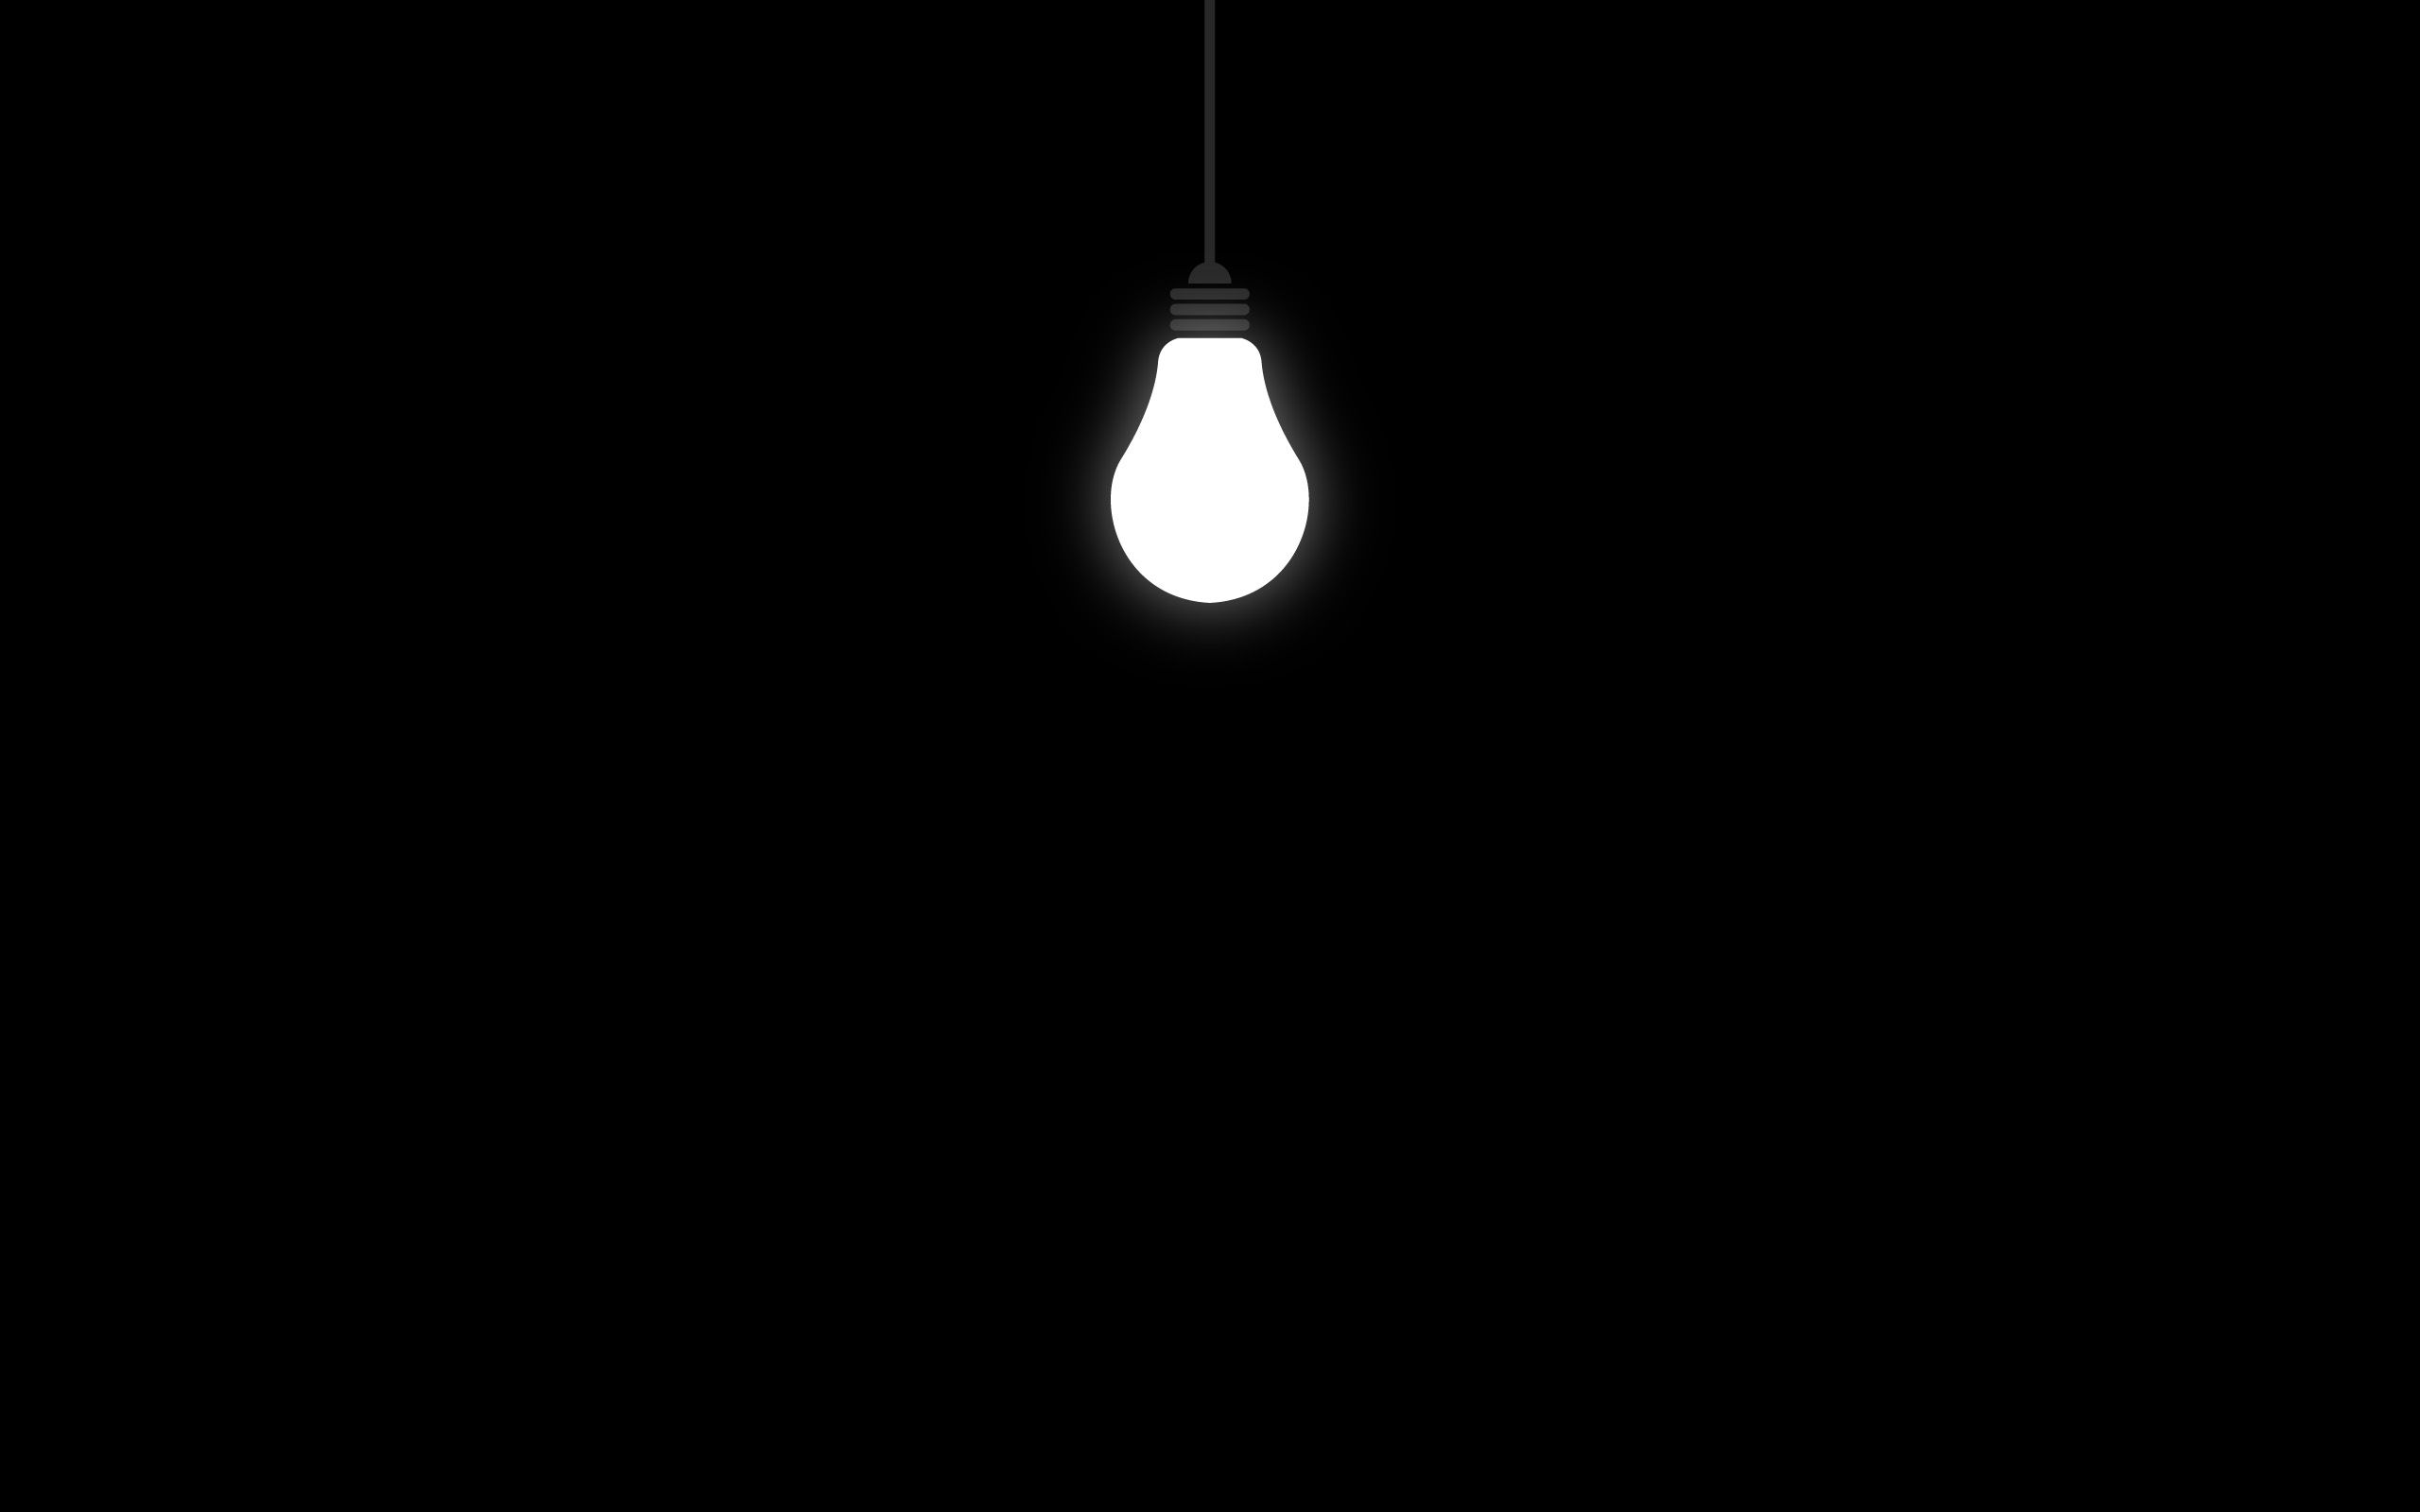 Minimalist Wallpaper Dump Black Background Wallpaper Minimal